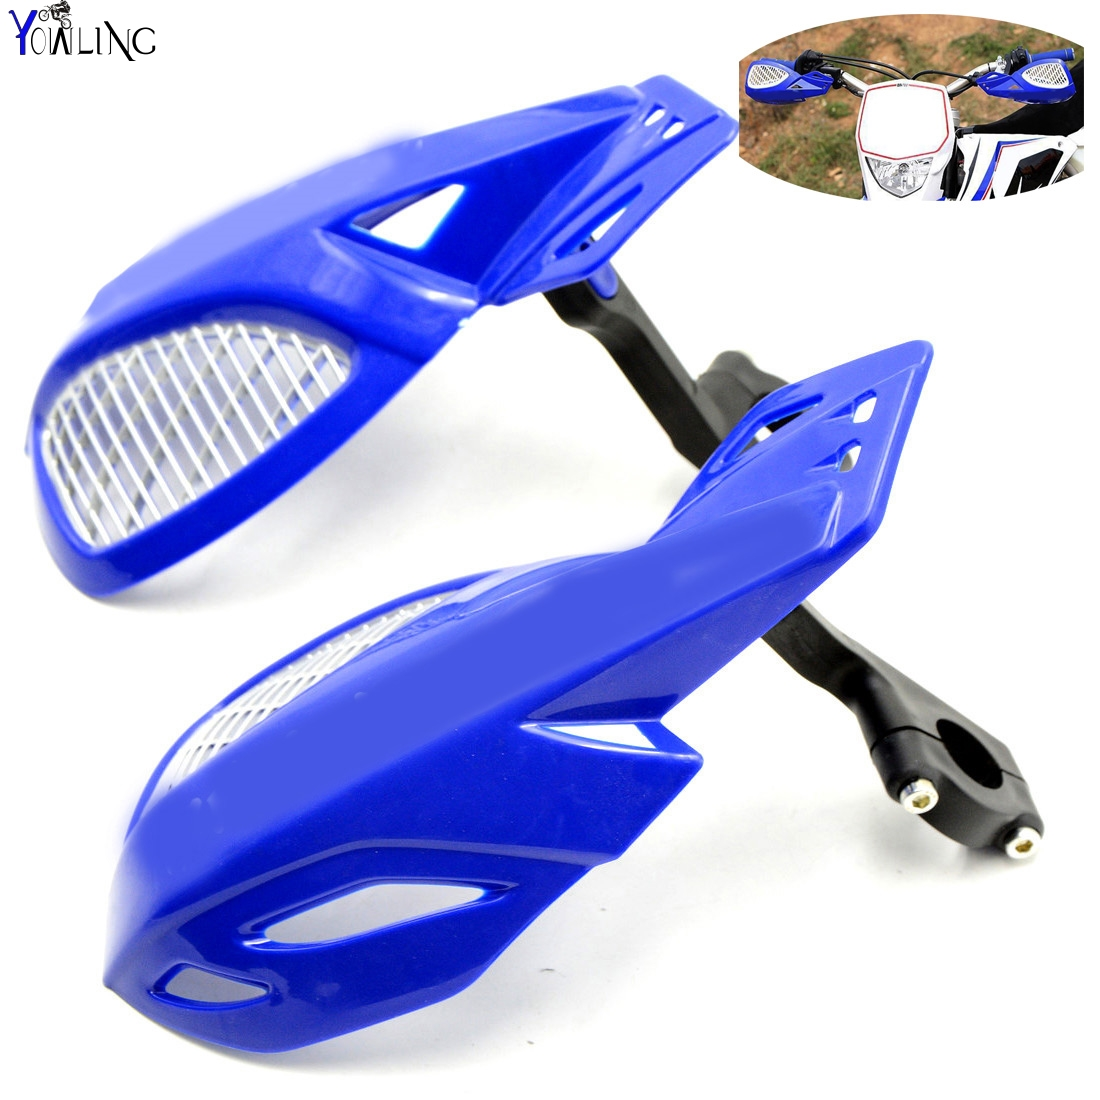 Dirt bike Motorcycle 7/8''22mm handlebar brake hand guard For YAMAHA YZ WR SEROW TTR XT 250F 426F 450F 250X 250FX dirt bike motorcycle 7 8 22mm handlebar brake hand guard for yamaha yz250x yz426f yz450f yz450fx yz80 yz85